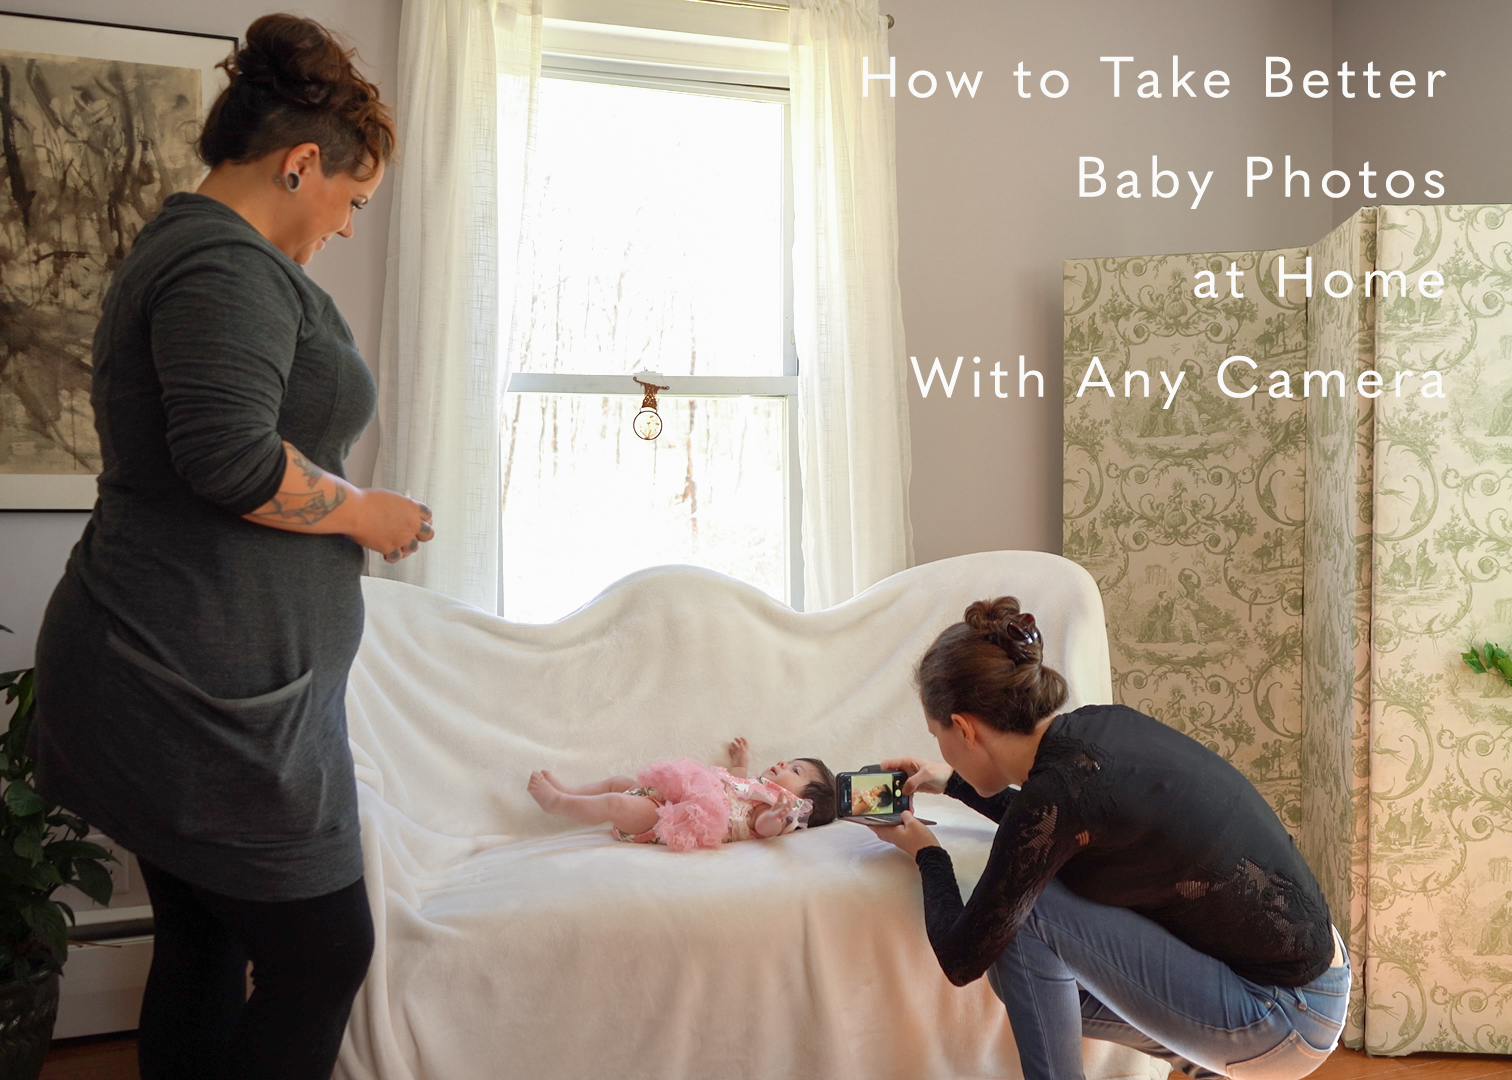 How to Take Better Baby Photos at Home With Any Camera